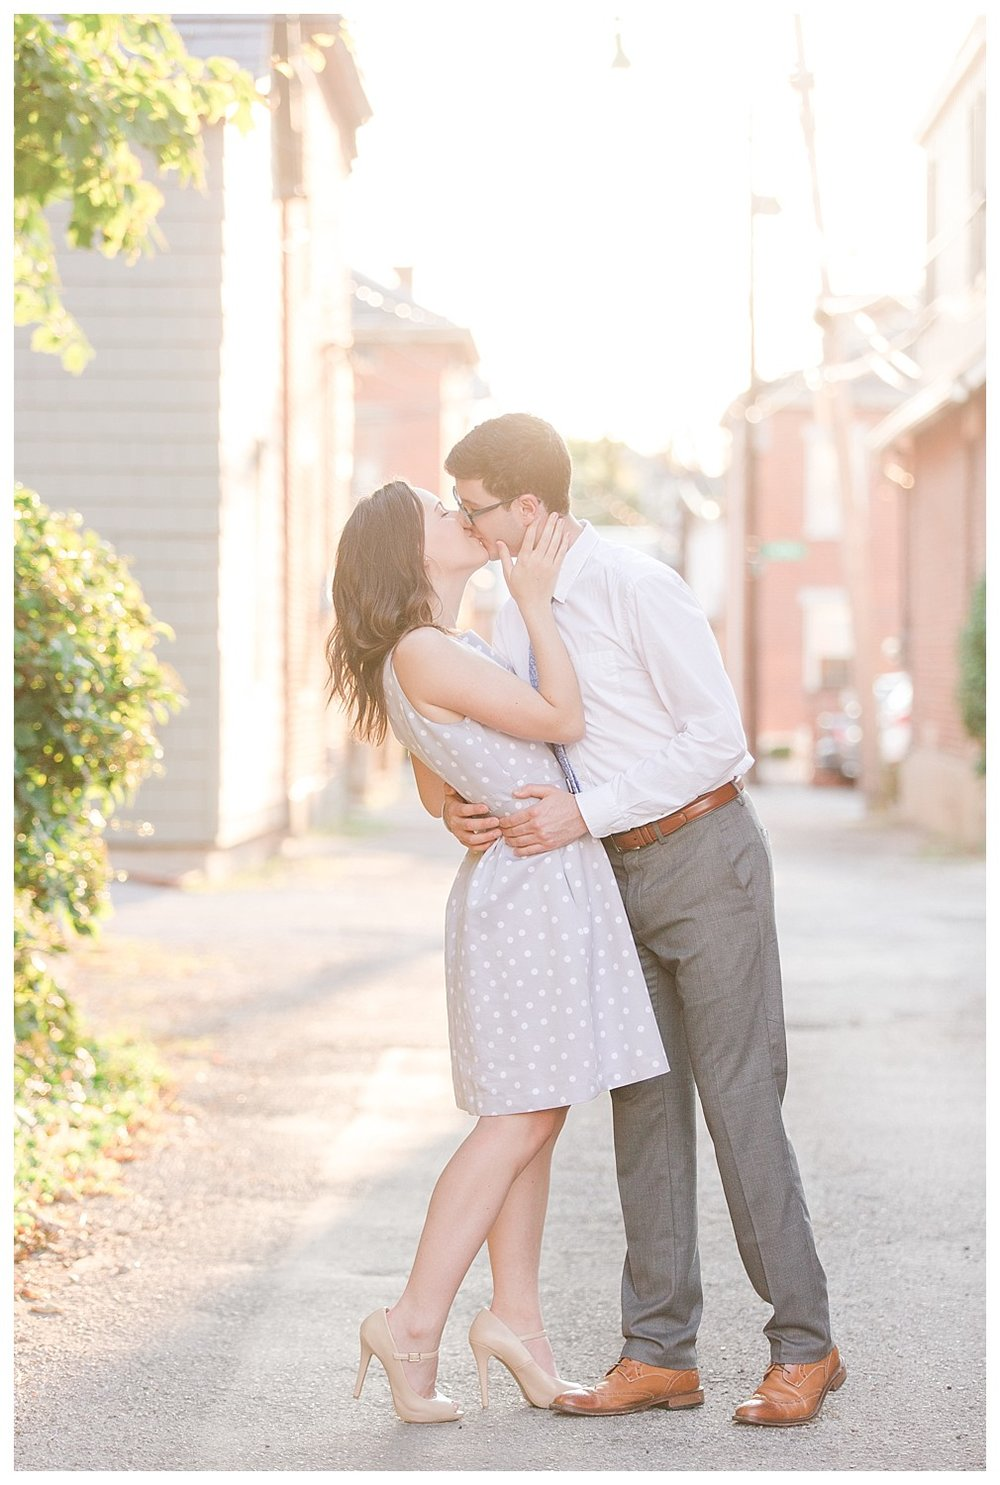 Katy+Luke_Esession_0011.jpg